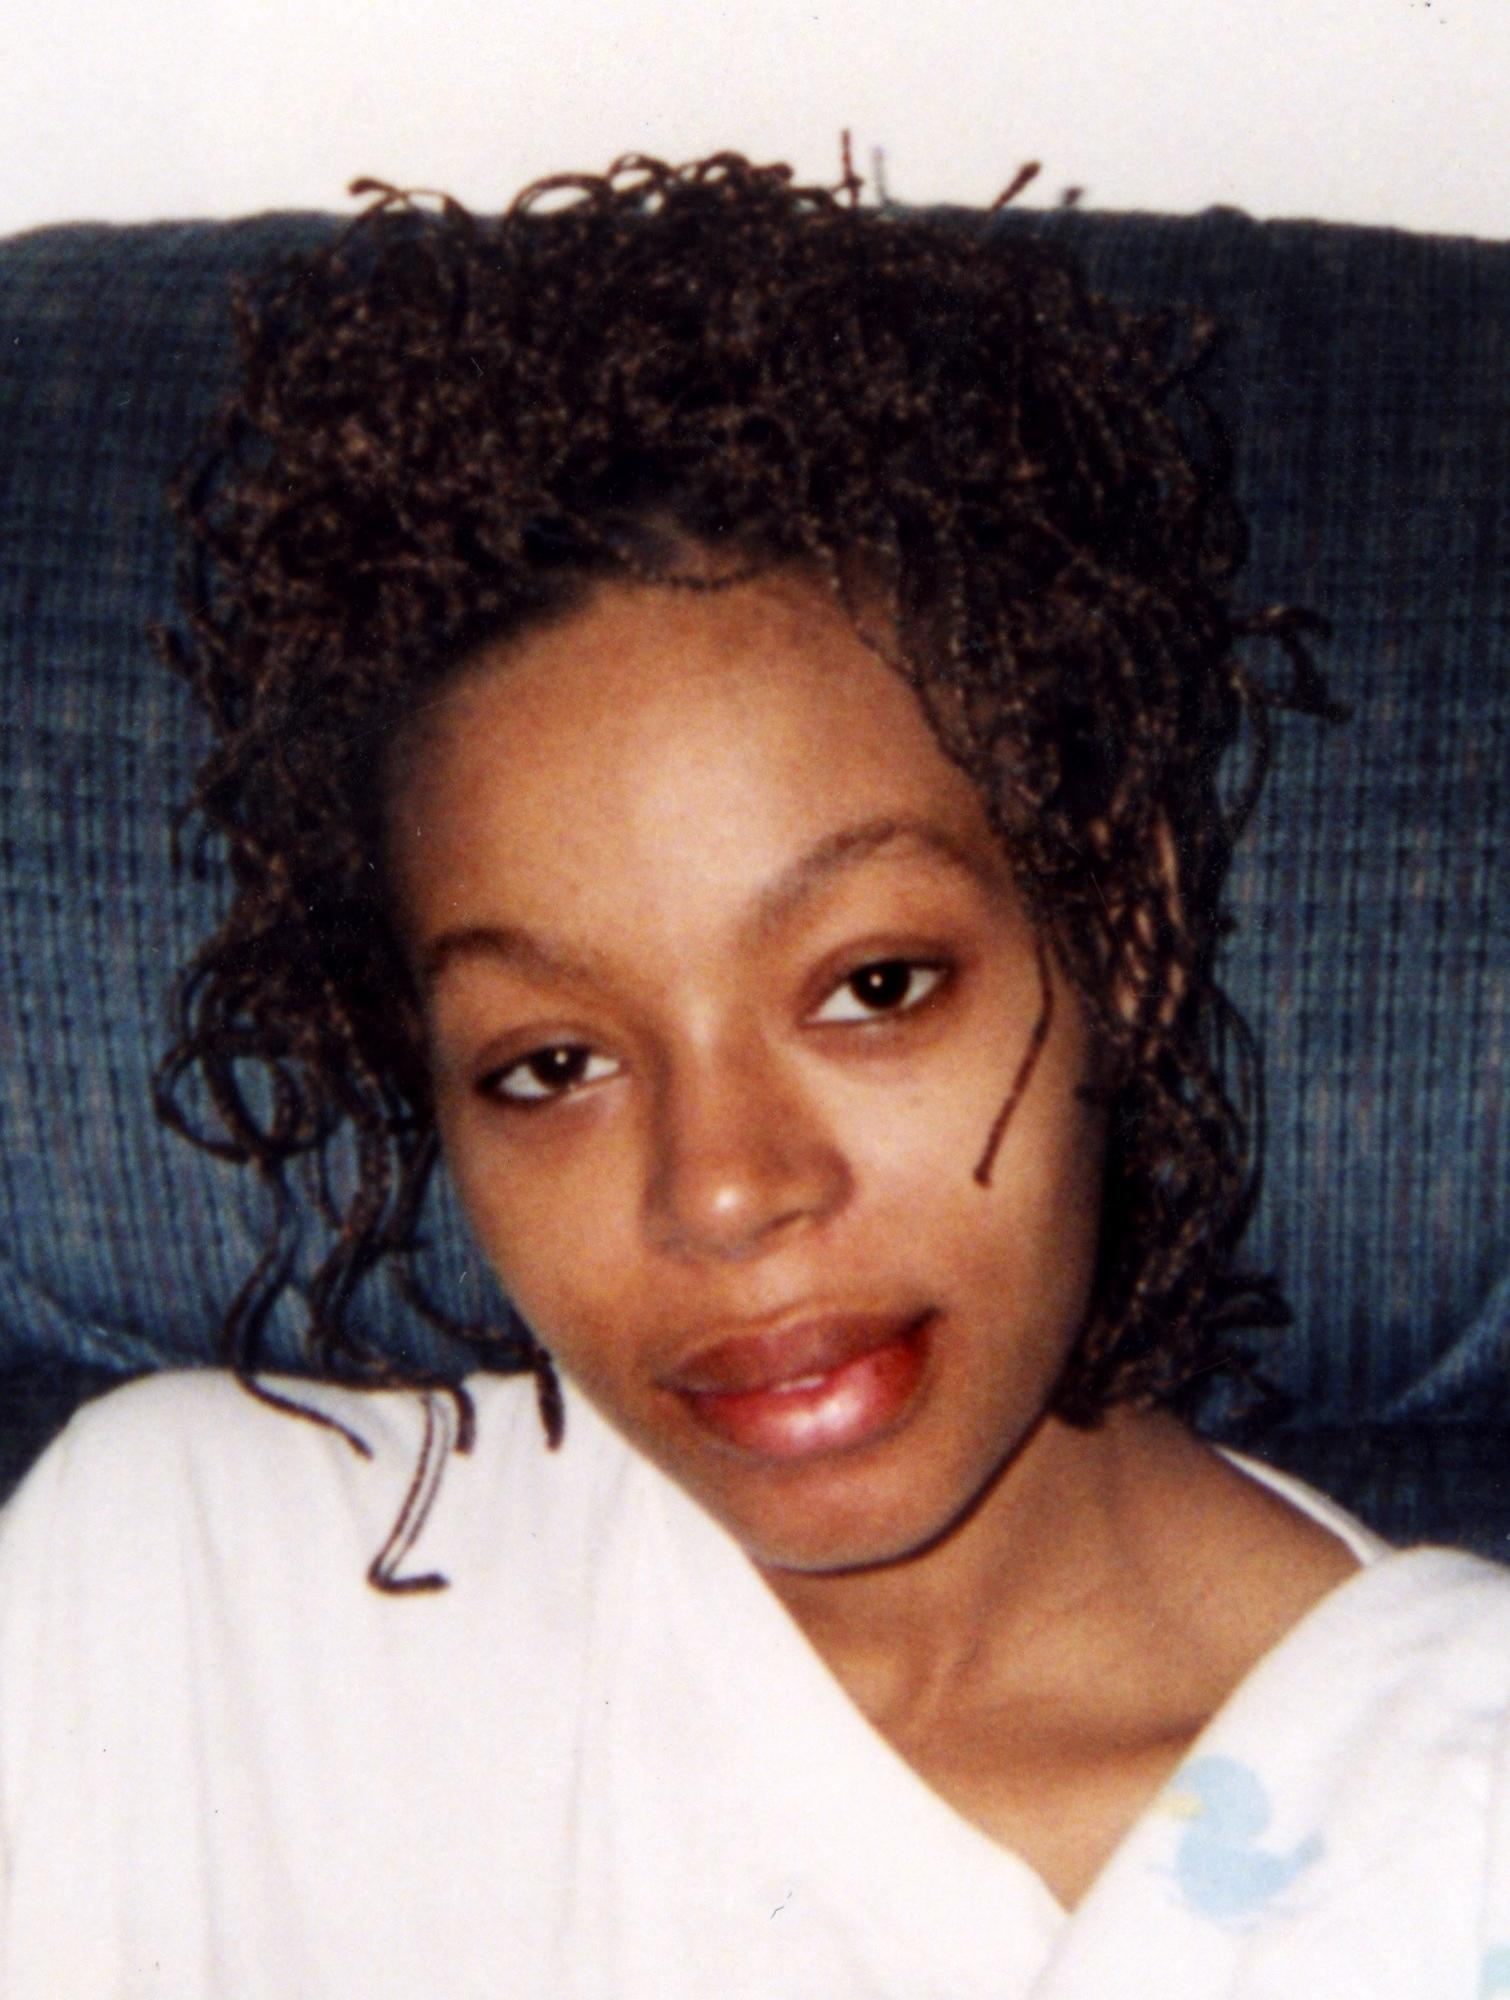 Kendra James was shot in the head by a police officer in Portland, Ore.